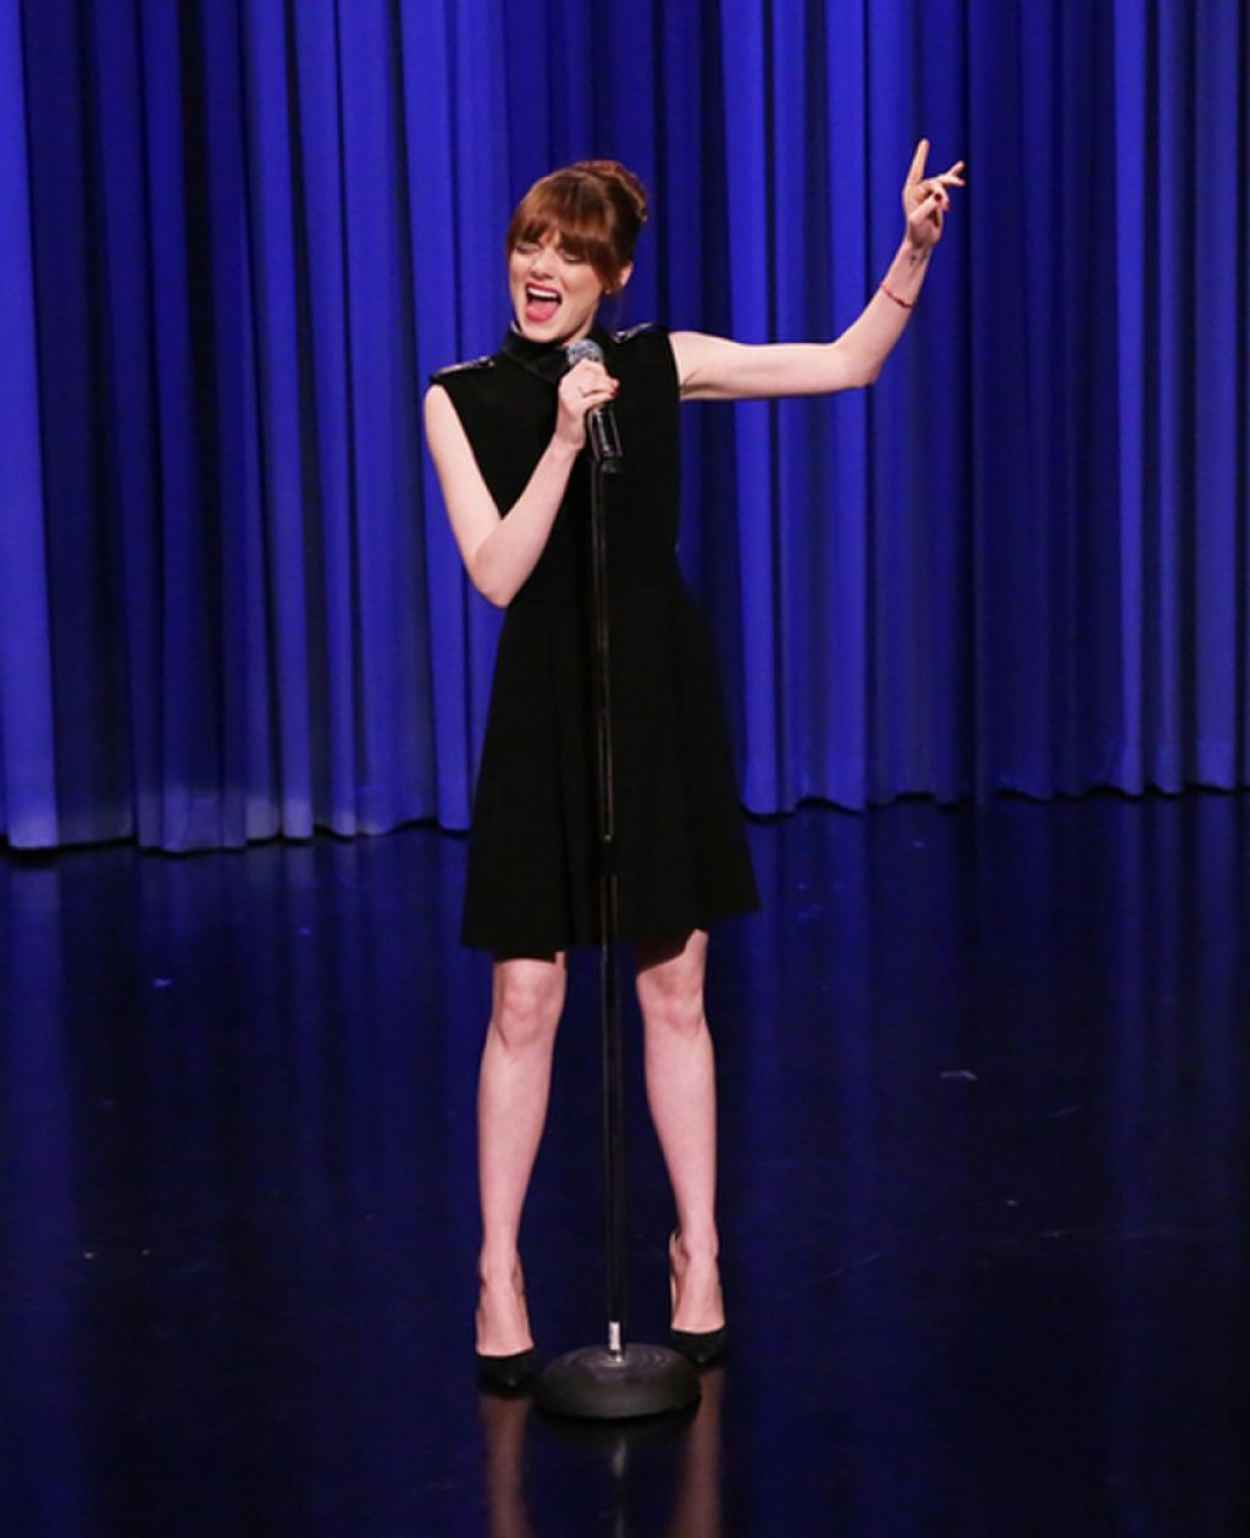 Emma Stone at The Tonight Show with Jimmy Fallon - April 2015-1